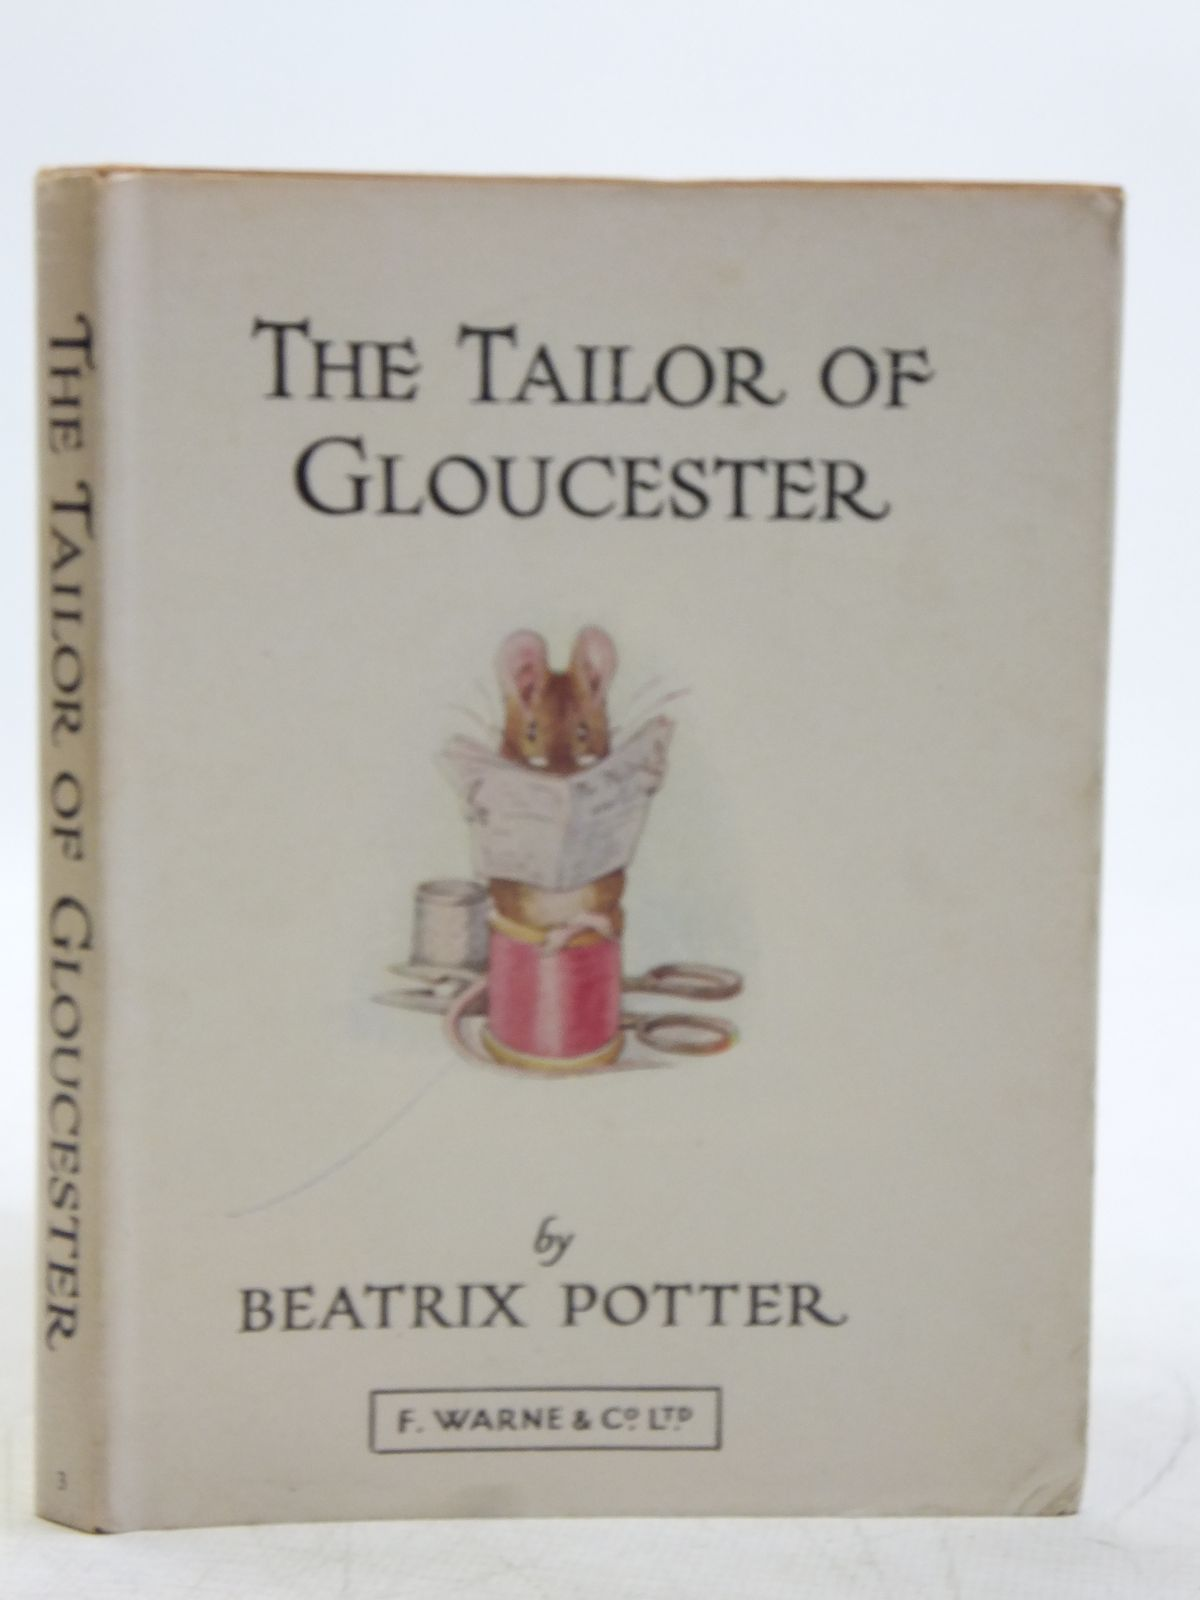 Photo of THE TAILOR OF GLOUCESTER written by Potter, Beatrix illustrated by Potter, Beatrix published by Frederick Warne & Co Ltd. (STOCK CODE: 2119325)  for sale by Stella & Rose's Books